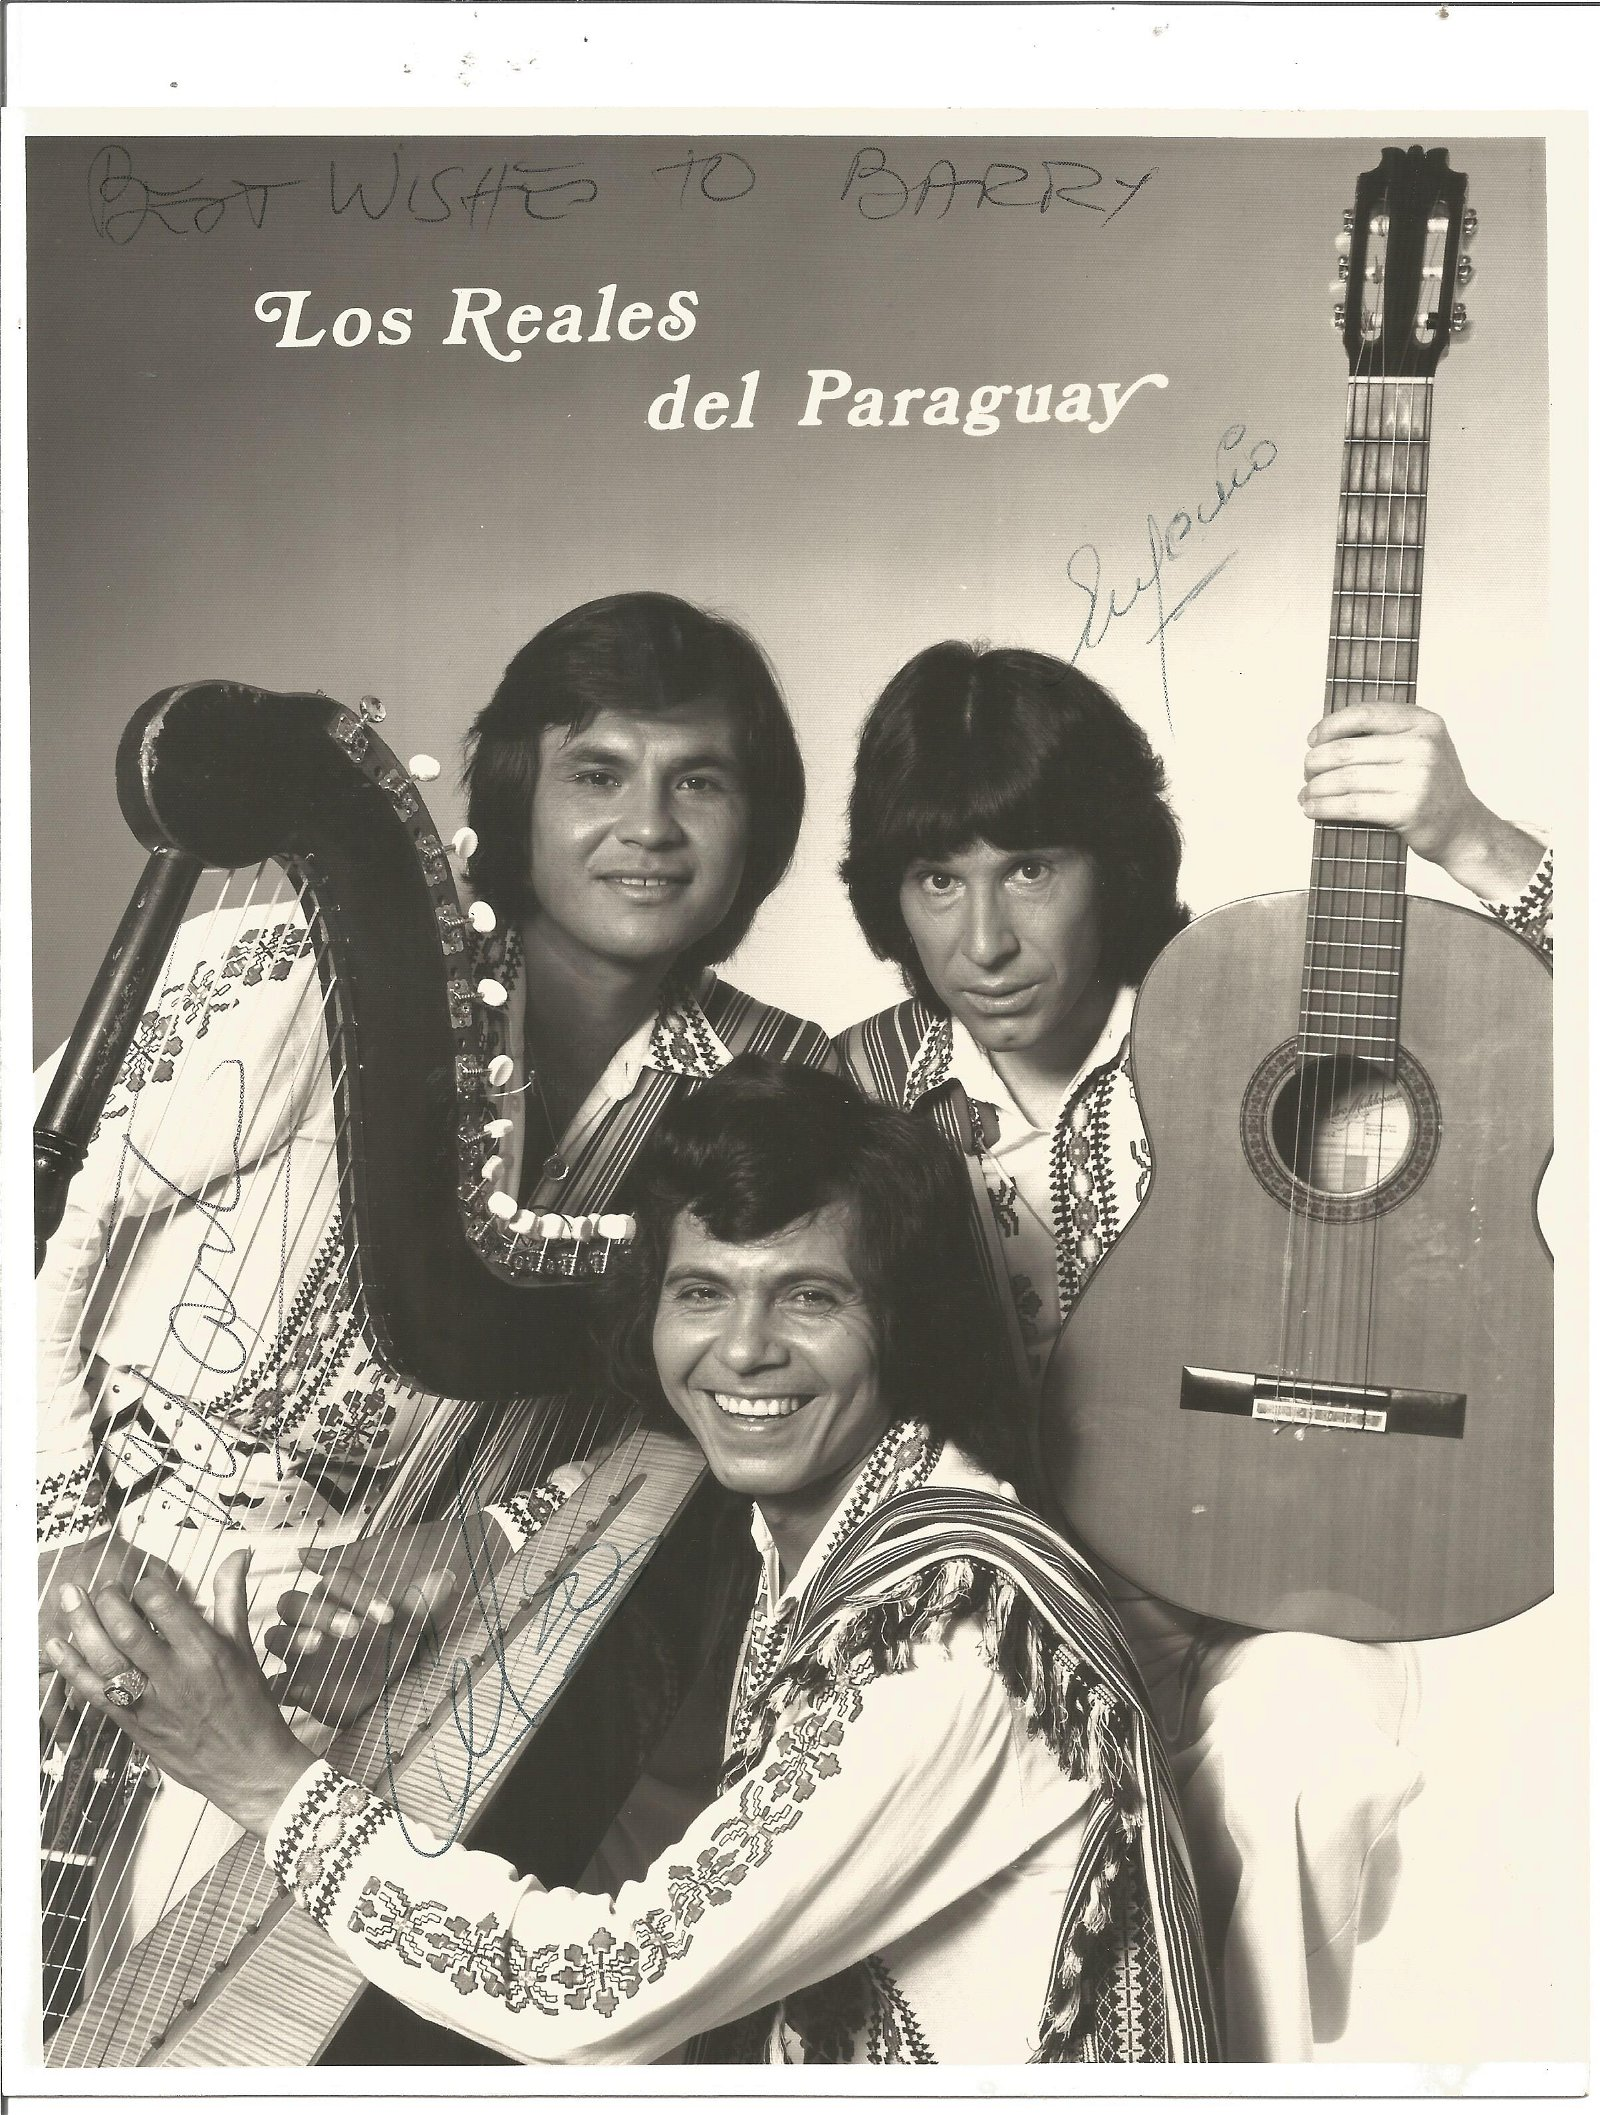 Los Reales del Paraguay signed 10x8 black and white